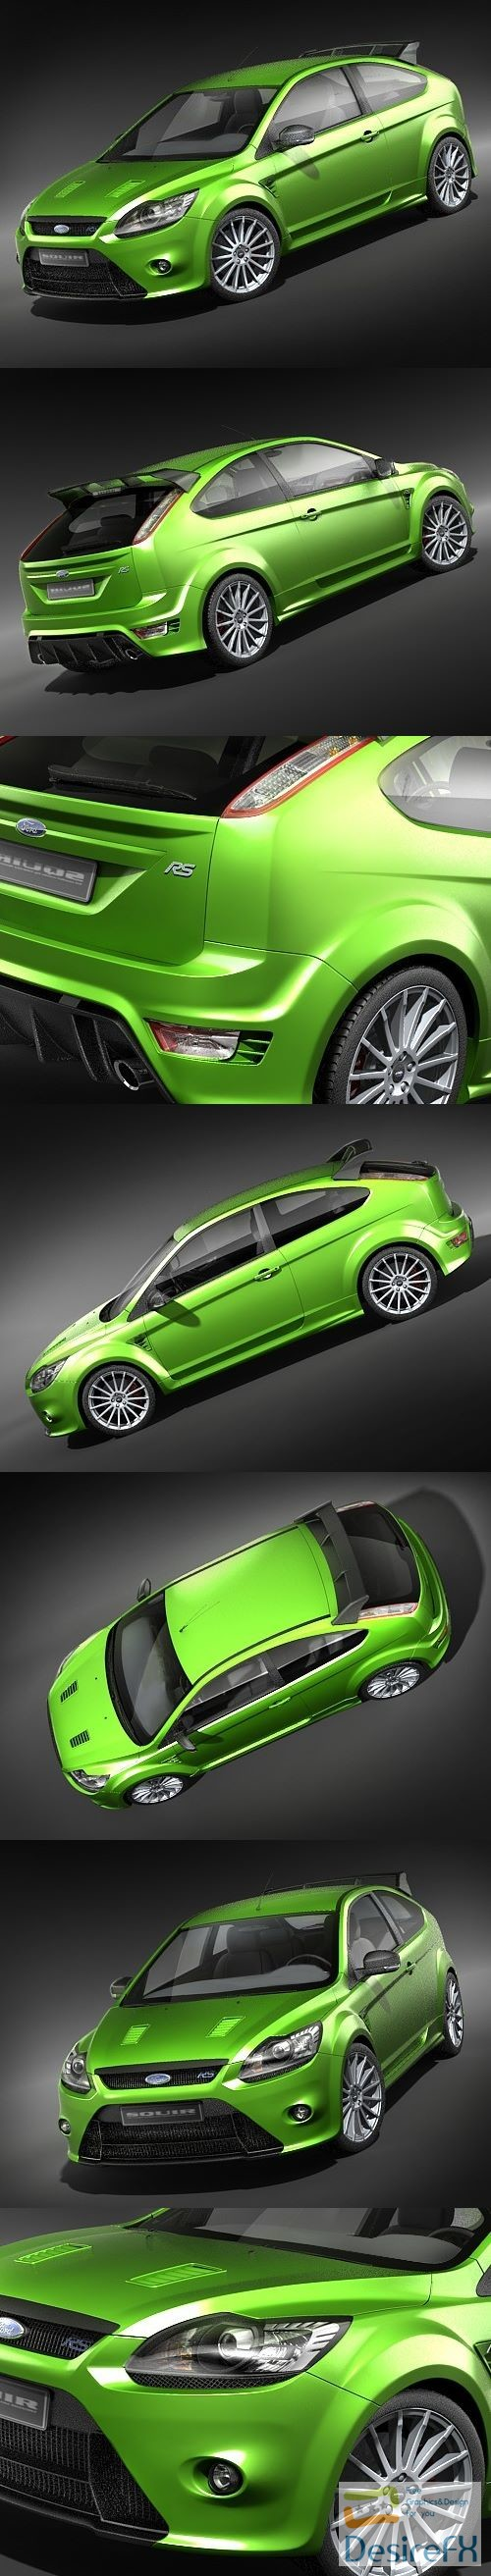 3d-models - Ford Focus RS 2009 3D Model